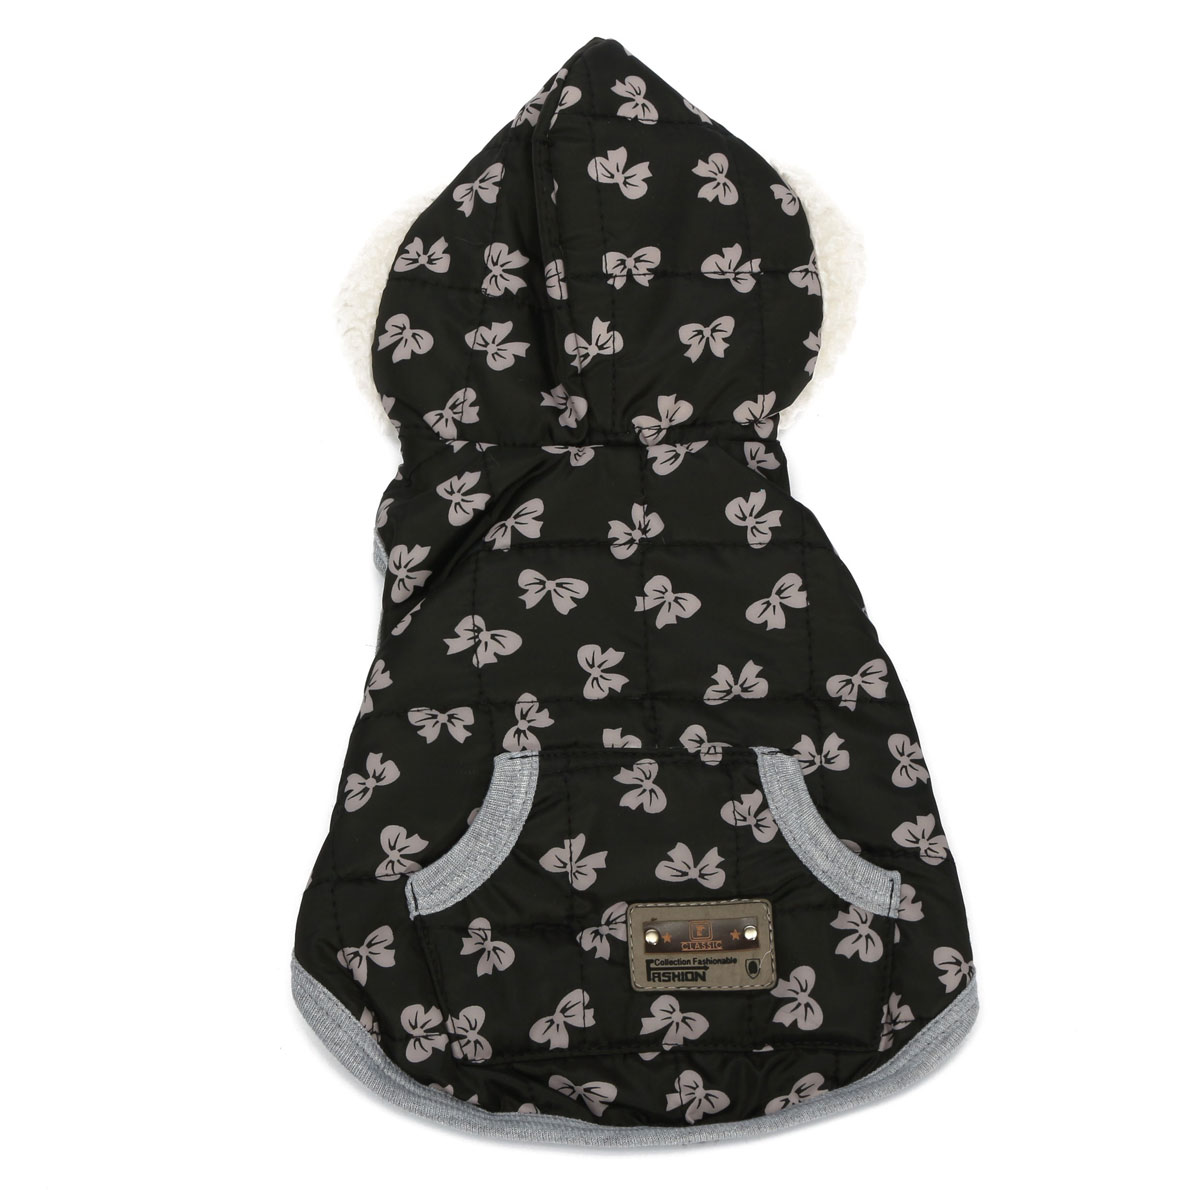 Winter Black Cotton Cozy Pet Dog Puppy Warm Jacket Coat Vest Star Dot Bowknot Clothes with Cap